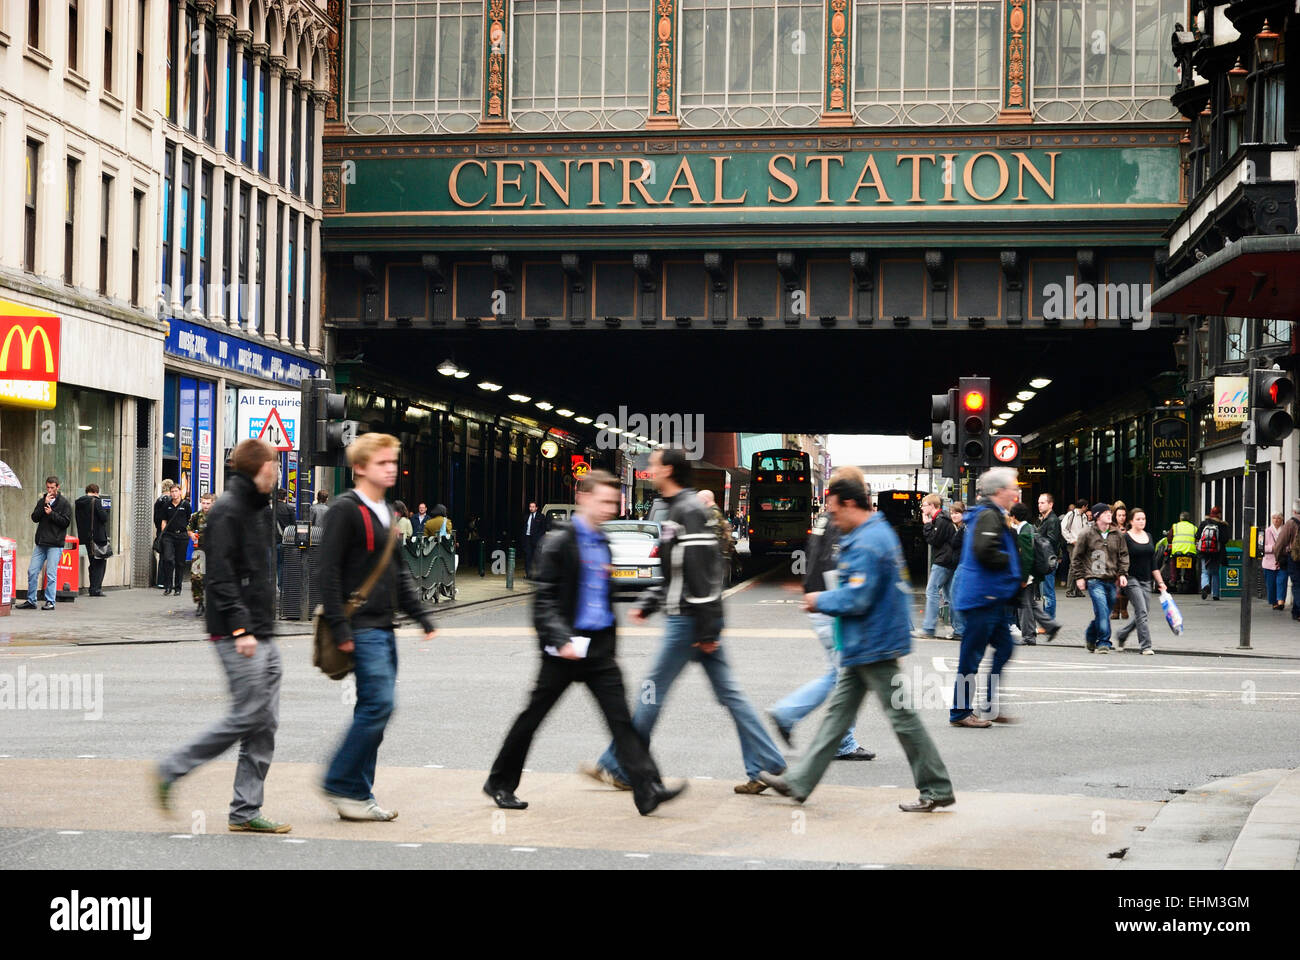 Glasgow Central station - Stock Image